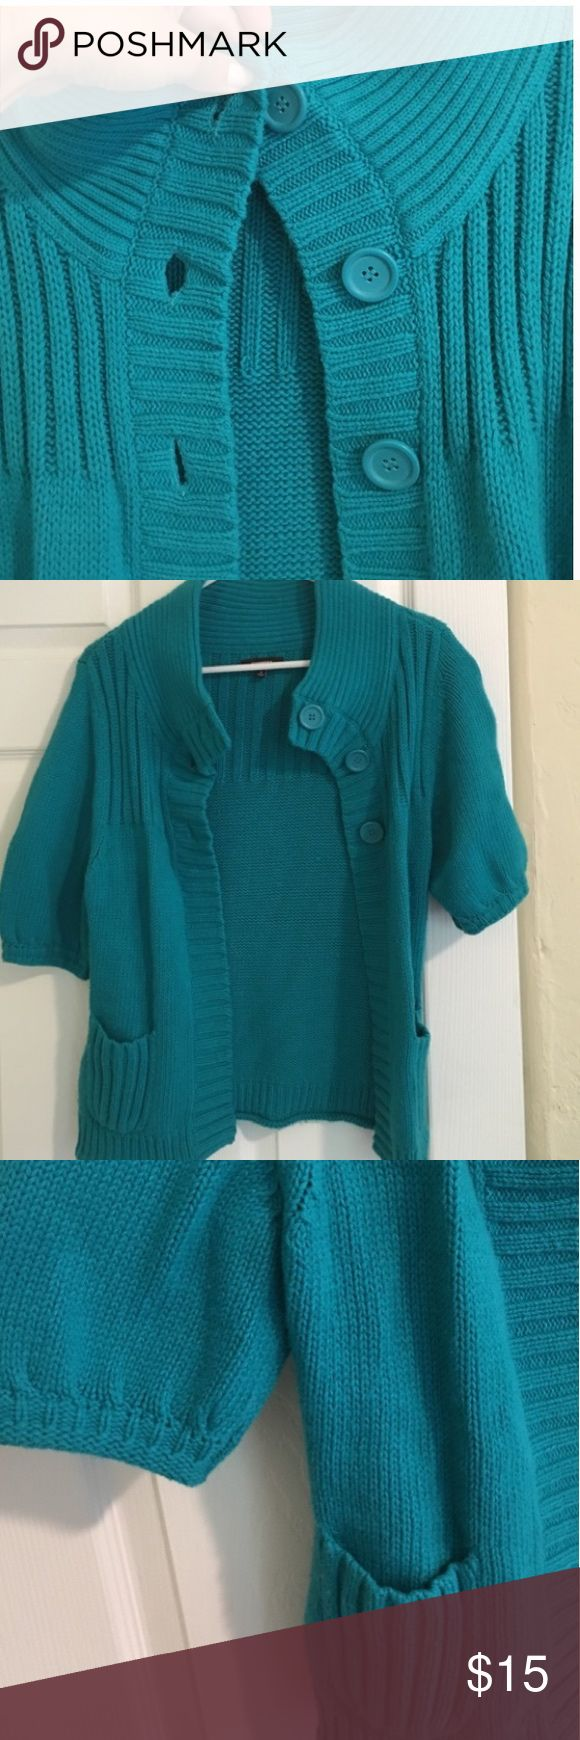 Express Teal Cardigan w/ Buttons Perfect for the fall 🍂🍁 Pair with a sweater underneath or tank top in warmer weather! Teal is bolder than pictured. Make an offer. 😊 Express Tops